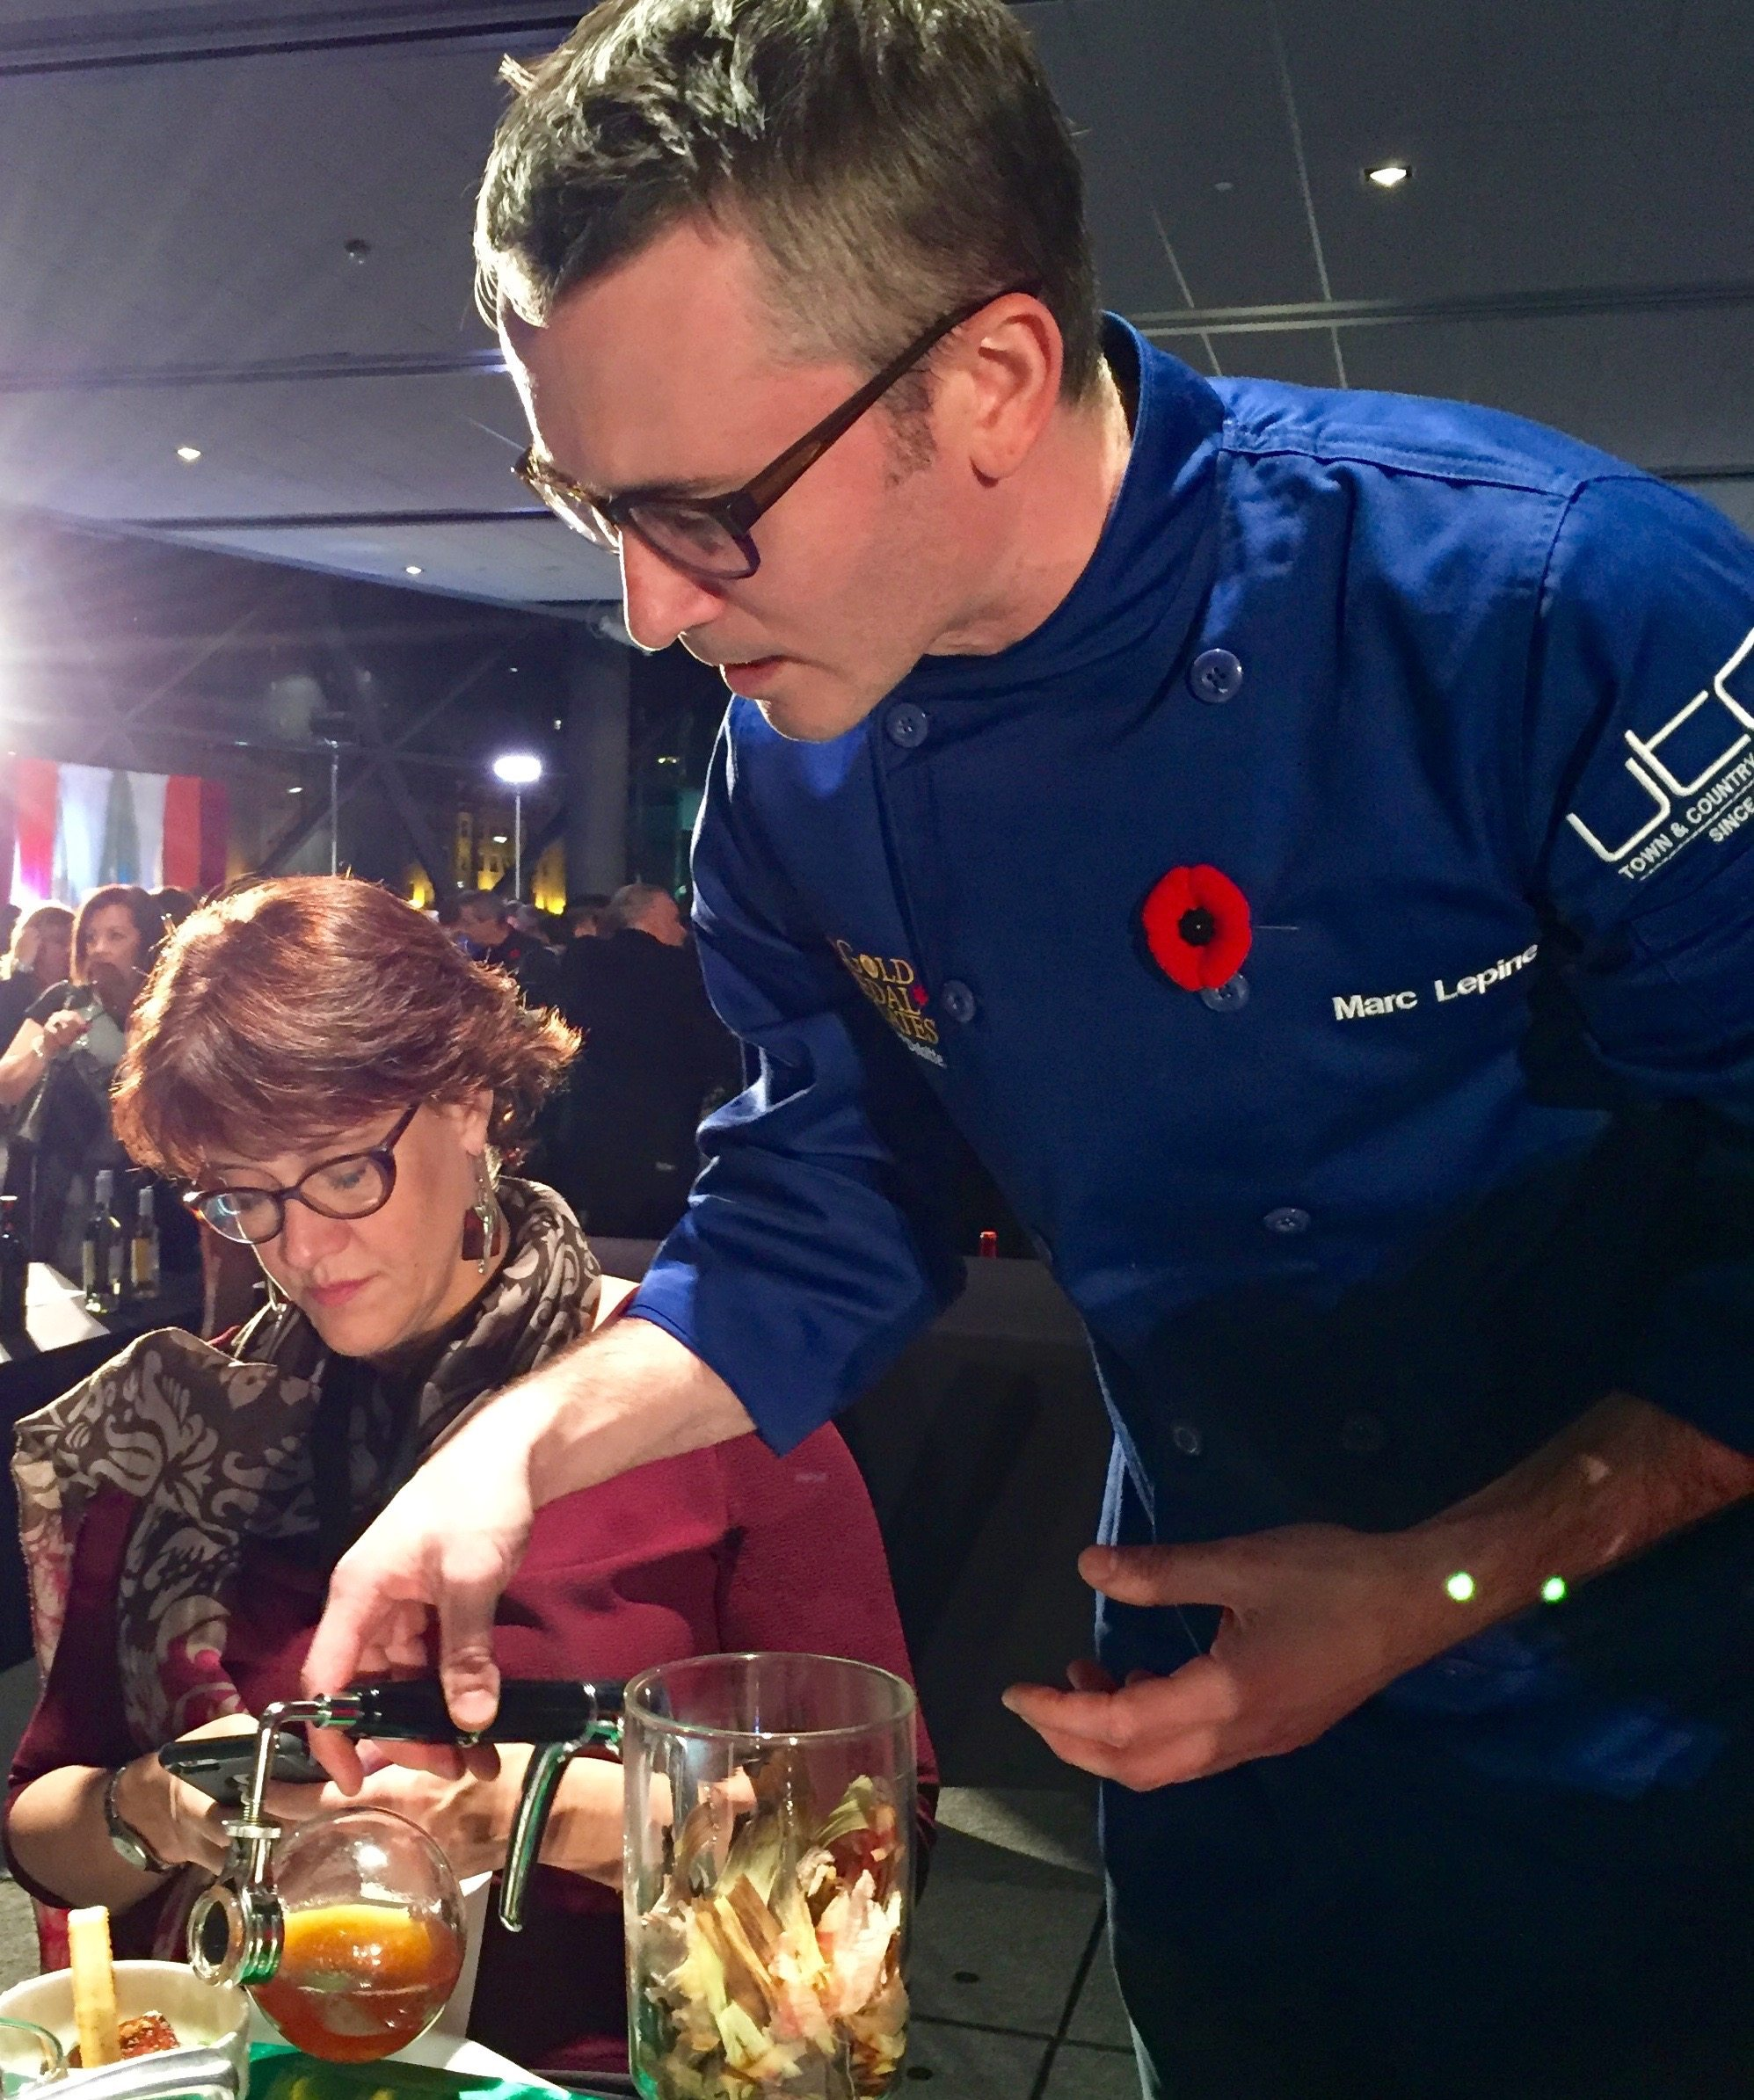 Chef Marc Lepine at the judges' table for the 2015 Gold Medal Plates competition. Photo by Anne DesBrisay, Ottawa Magazine.